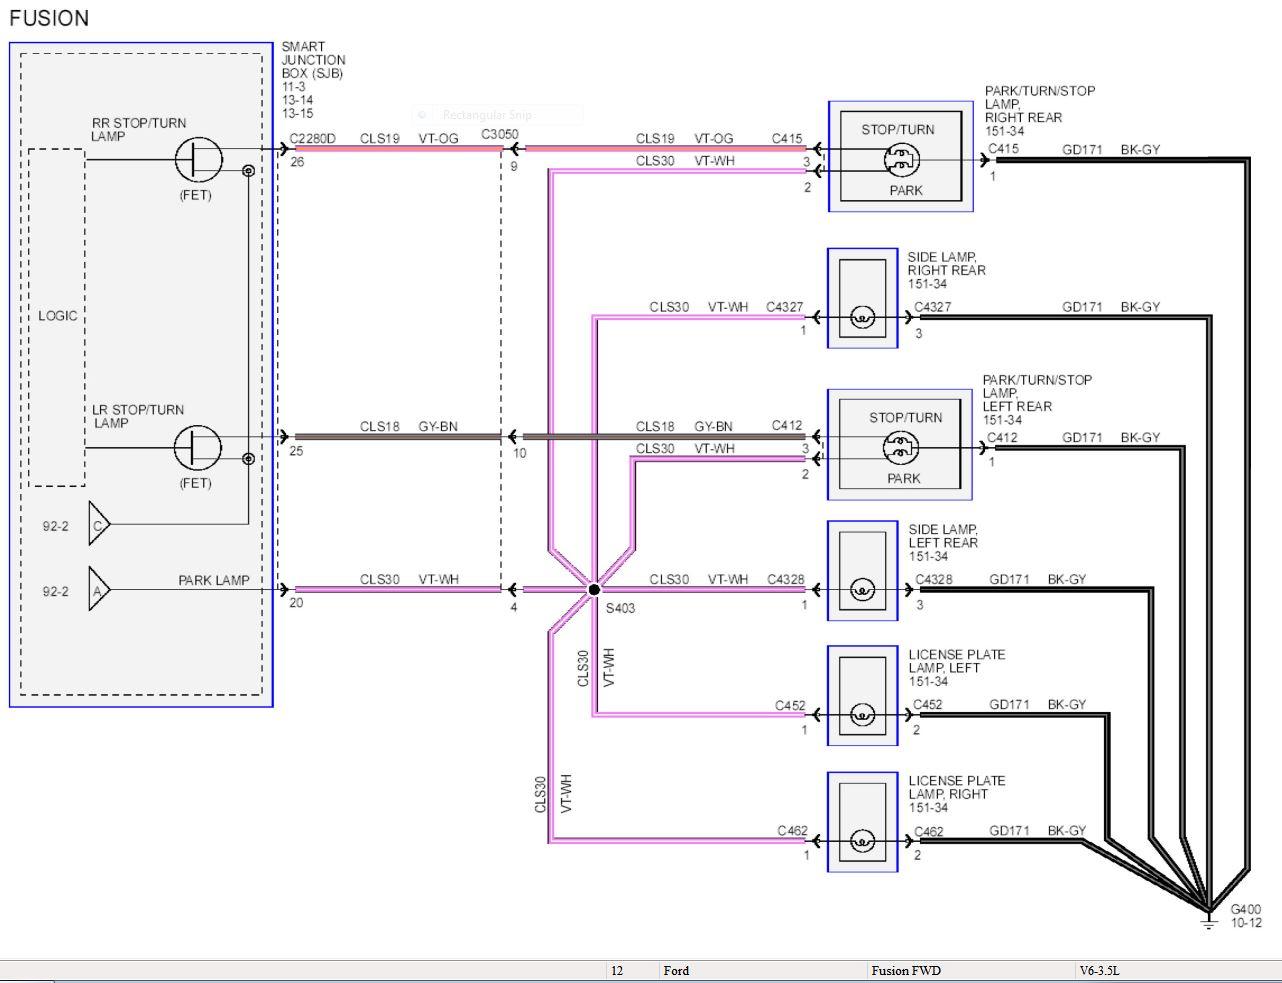 Surprising Ford Would Be Possible To Re Post The 2014 Fusion Wiring Diagram Wiring Cloud Inklaidewilluminateatxorg